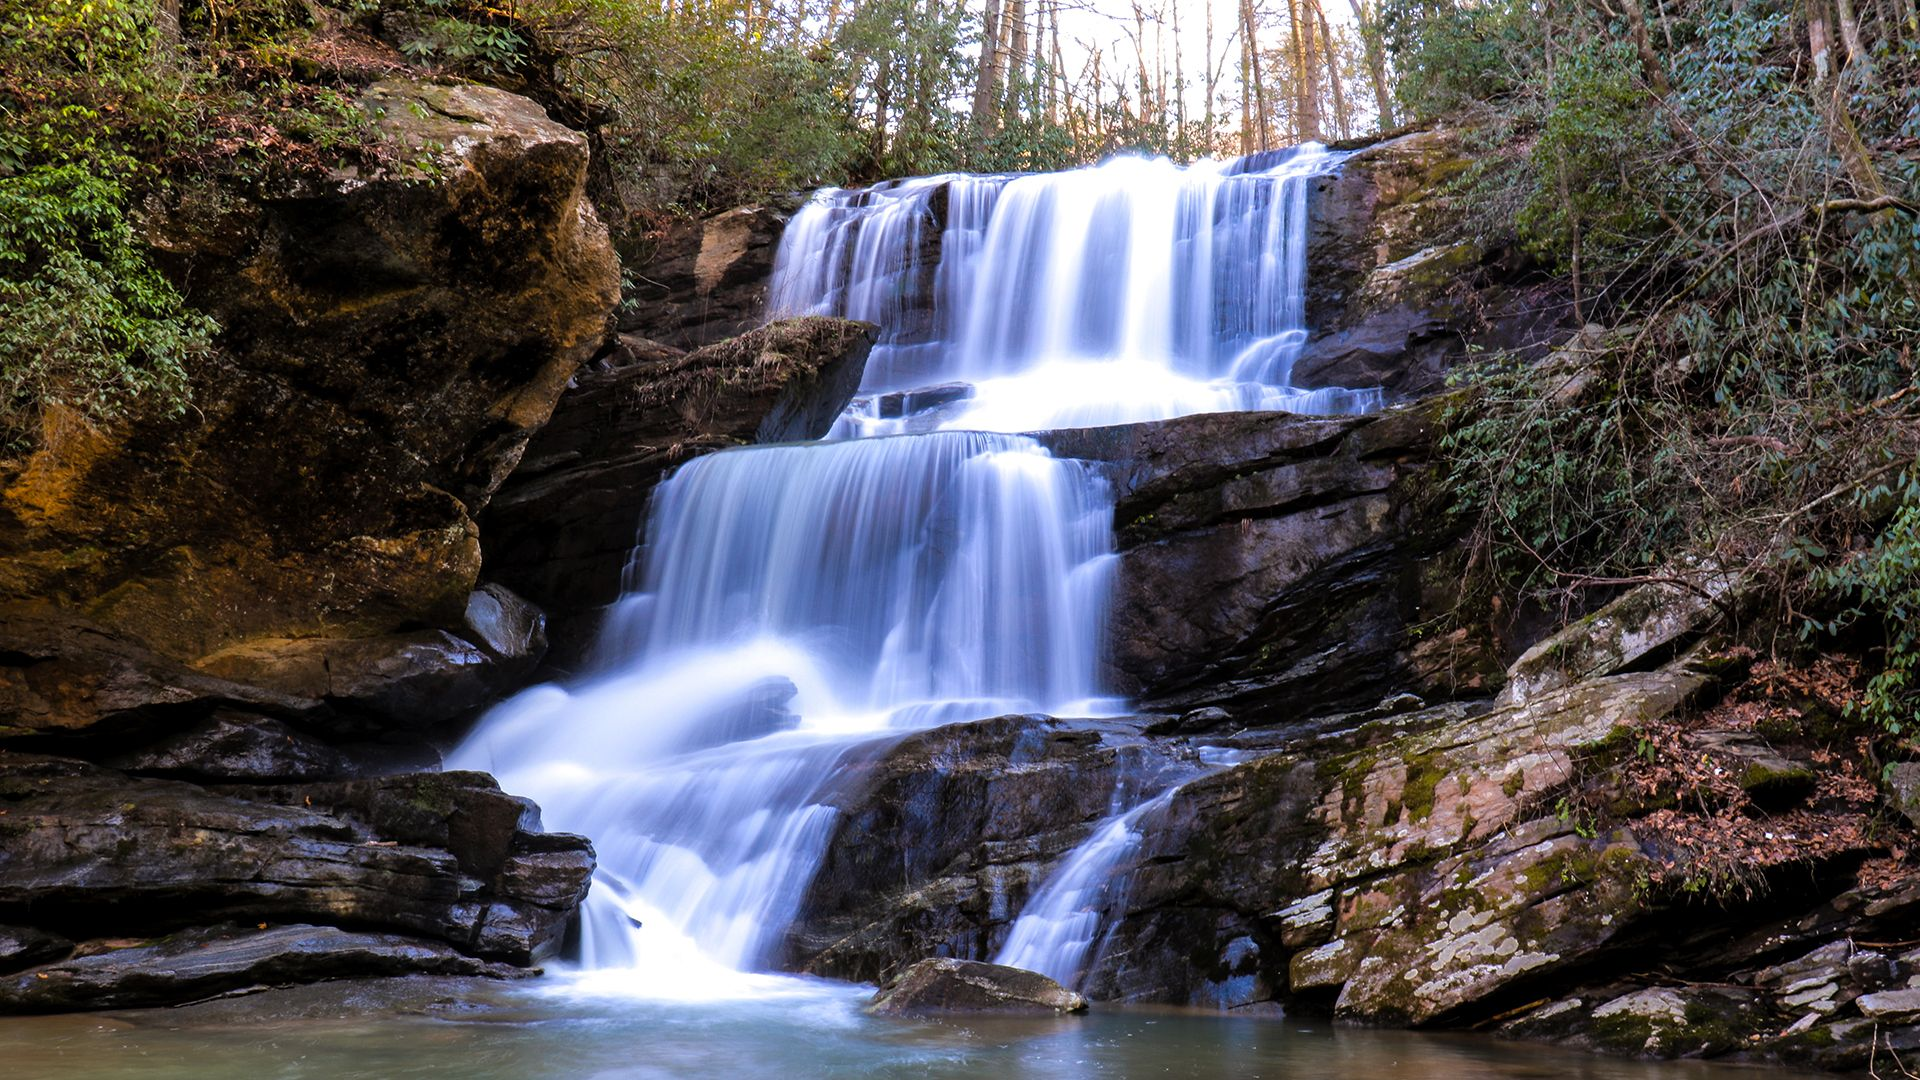 A Short Hike Along Cove Creek Gets You To This Beautiful Waterfall Hidden In The Green River Game Lands Waterfall North Carolina Waterfalls Waterfall Hikes